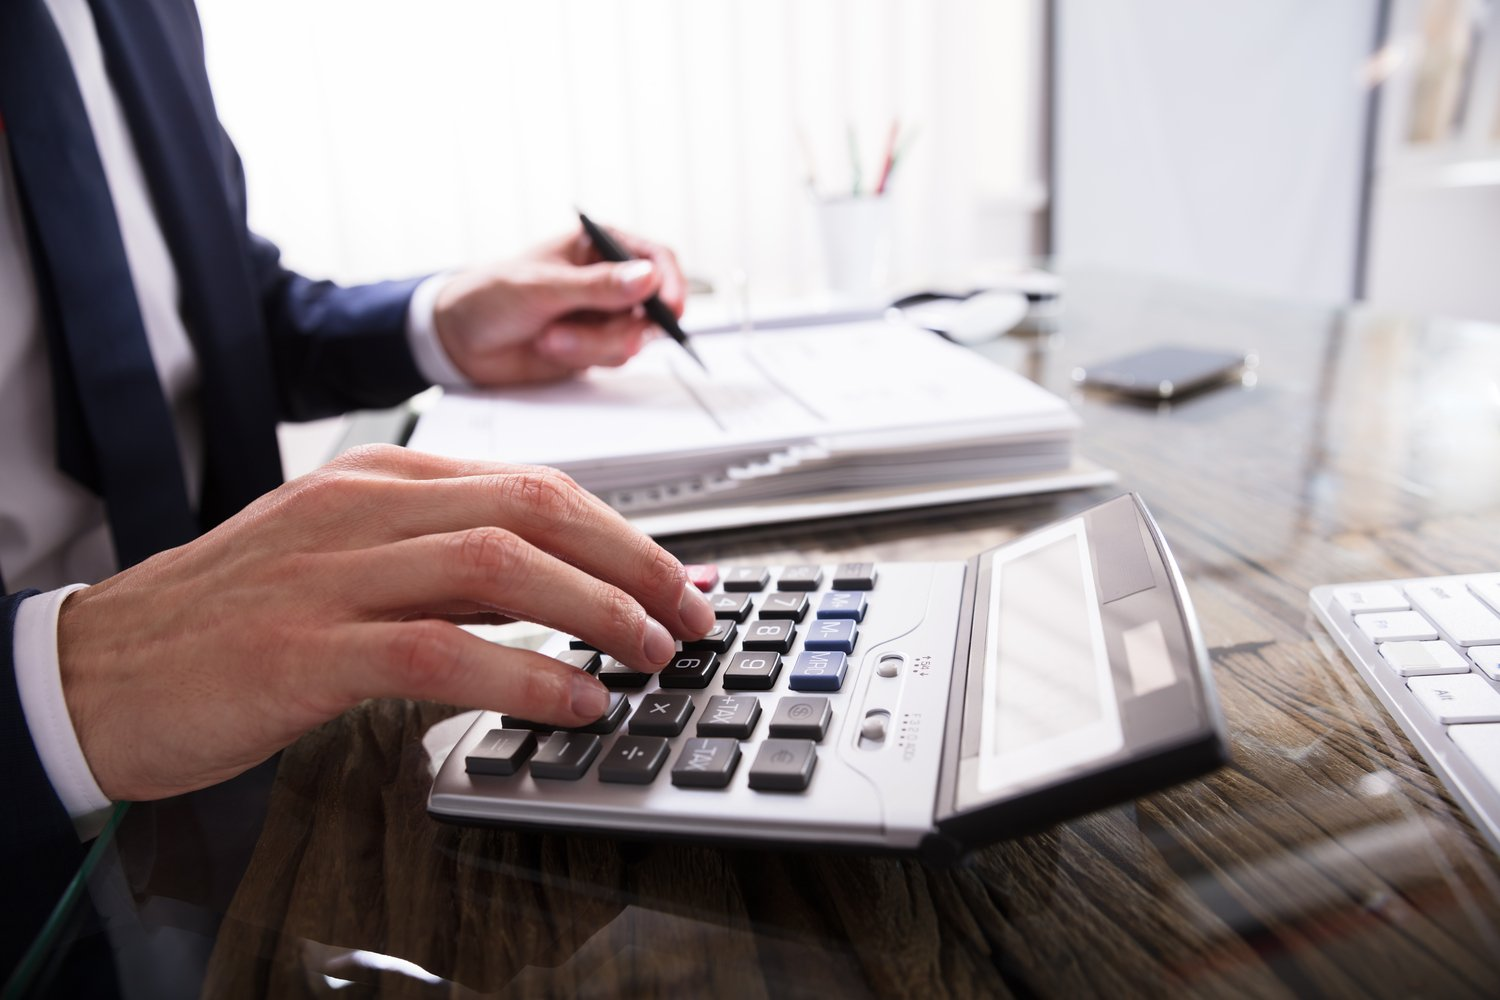 Small Businesses tax filing explained in simple terms